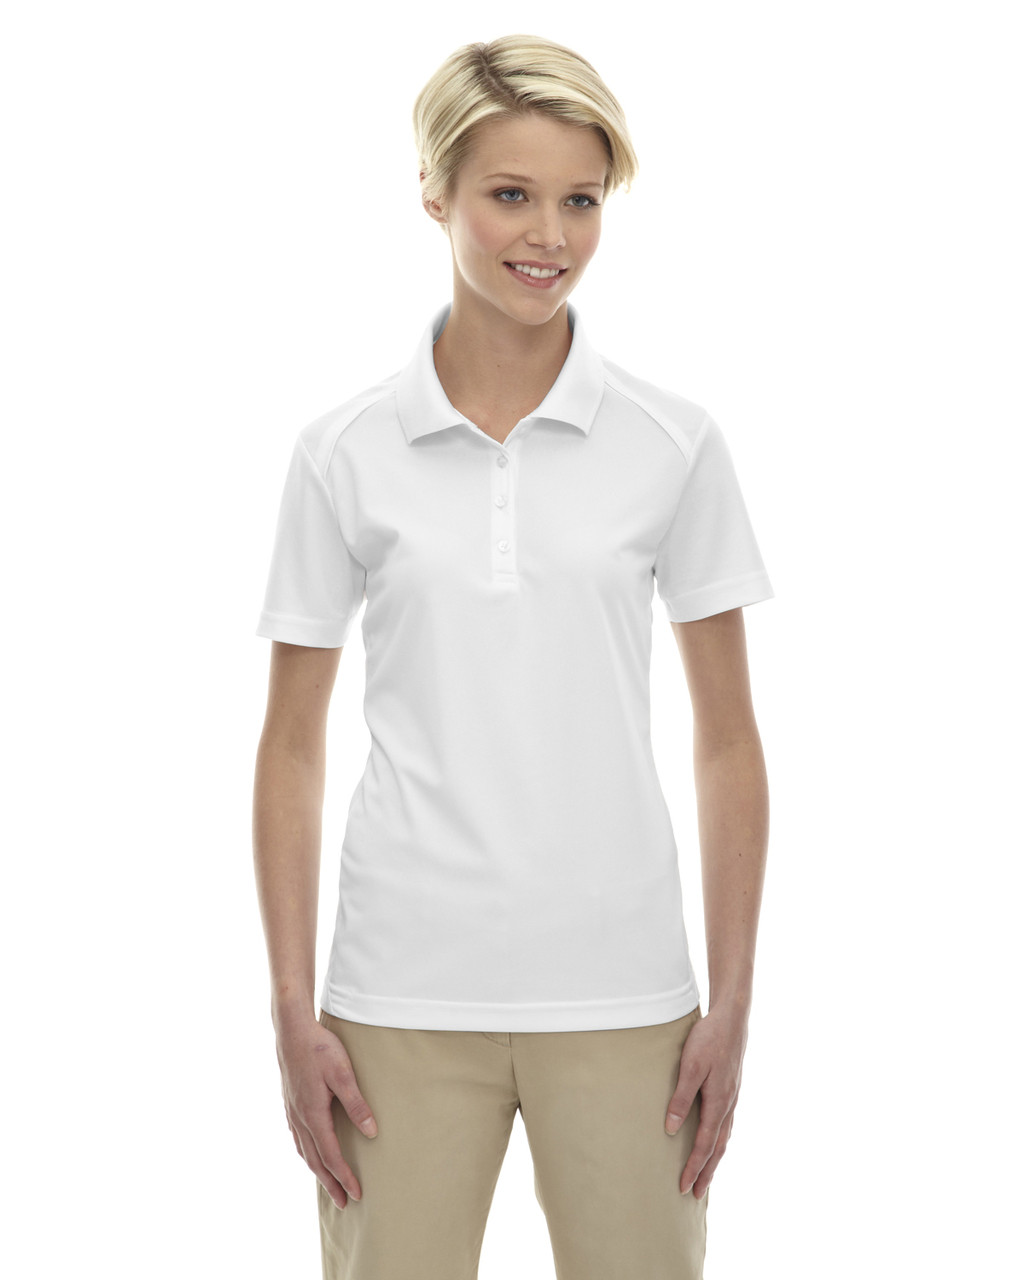 White 75108 Ash City - Extreme Eperformance Ladies' Shield Short-Sleeve Polo Shirt